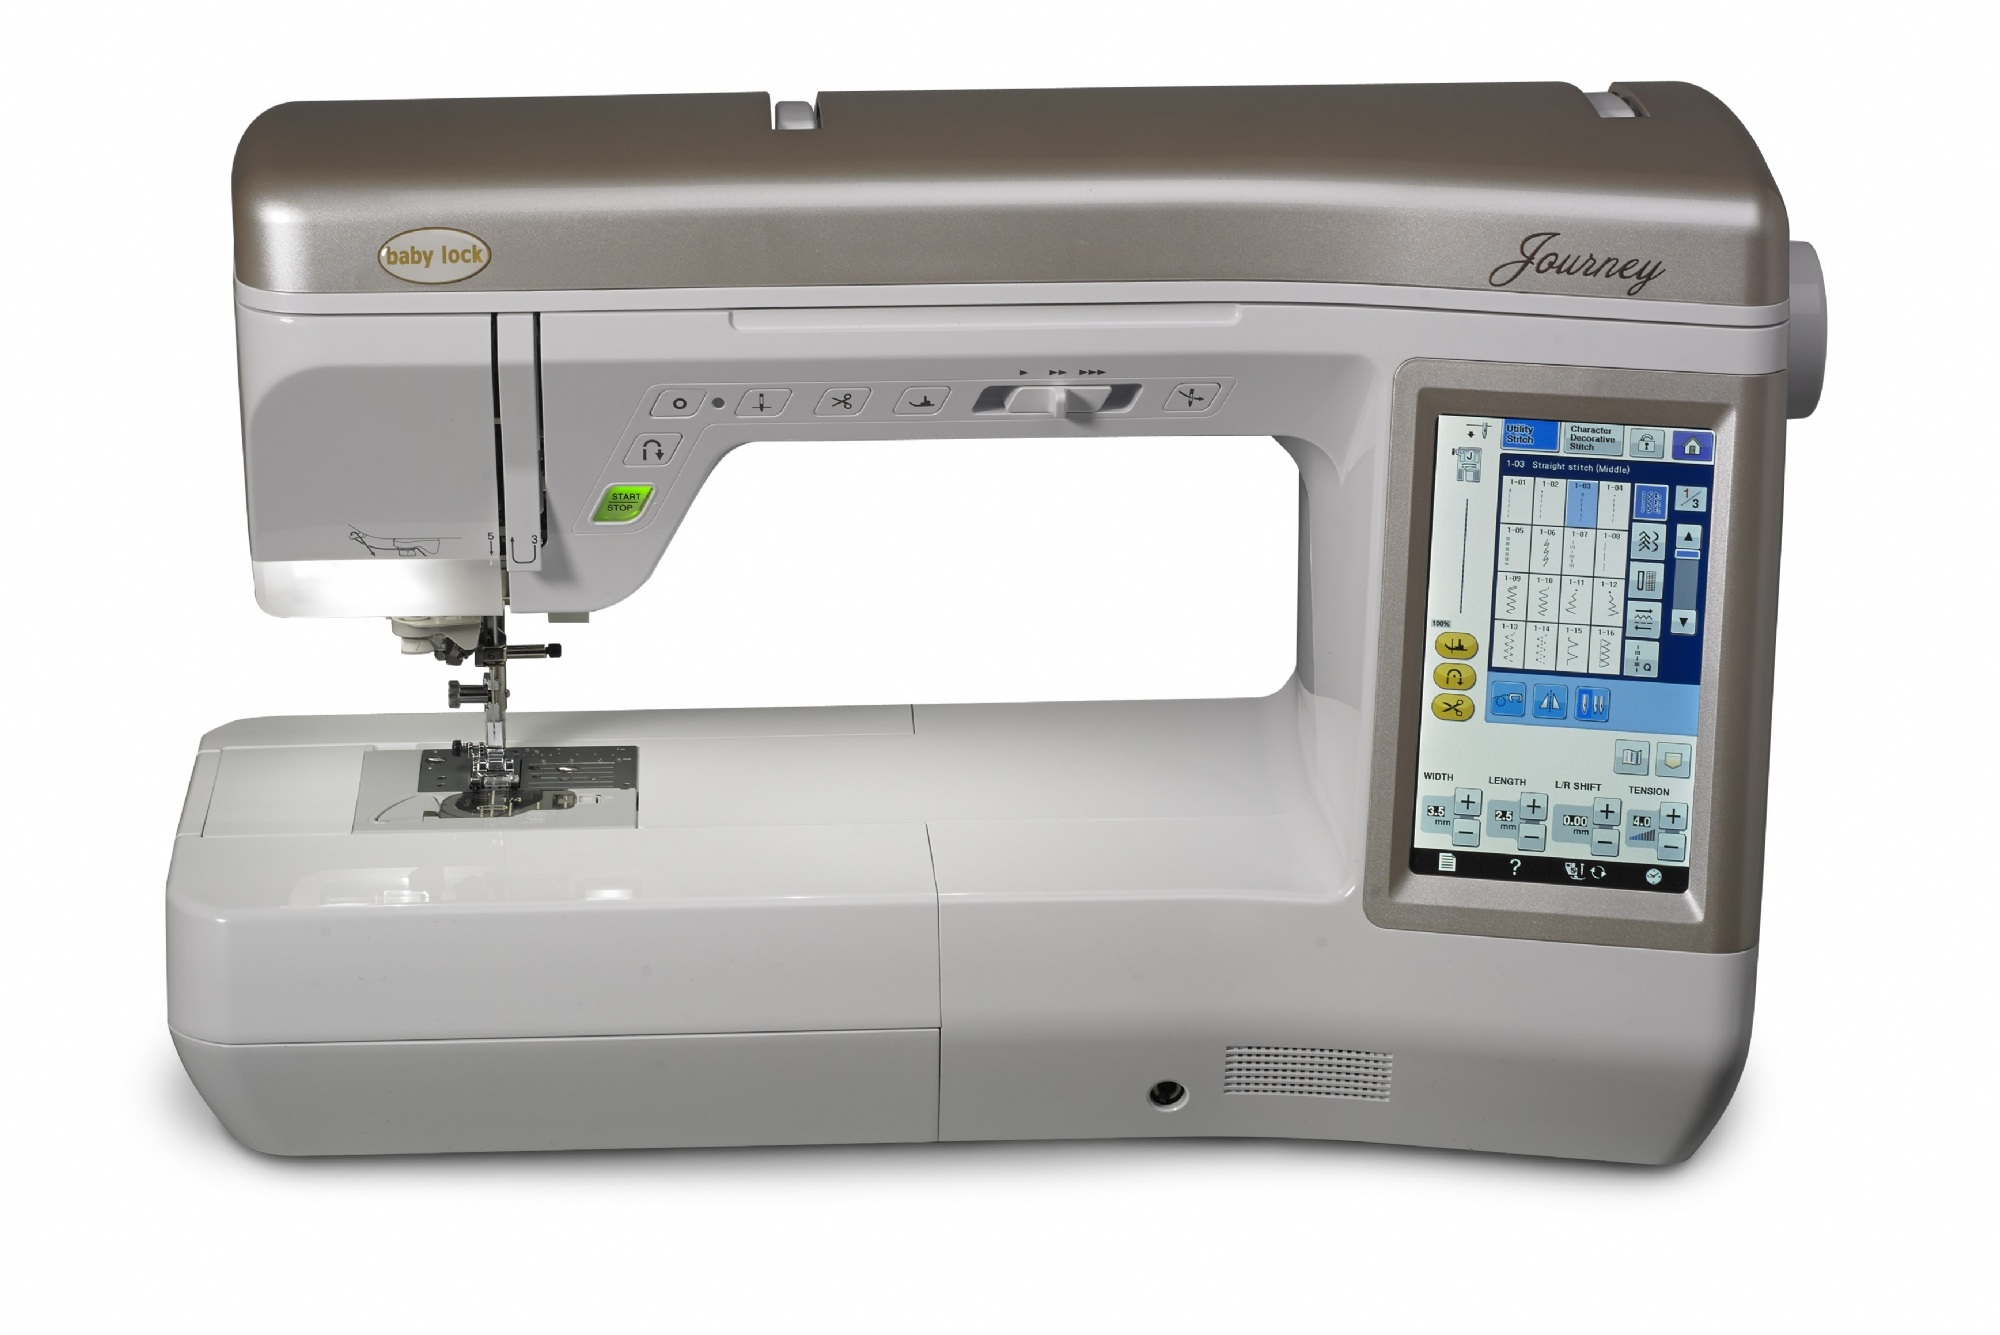 Journey Baby Lock Embroidery Machine